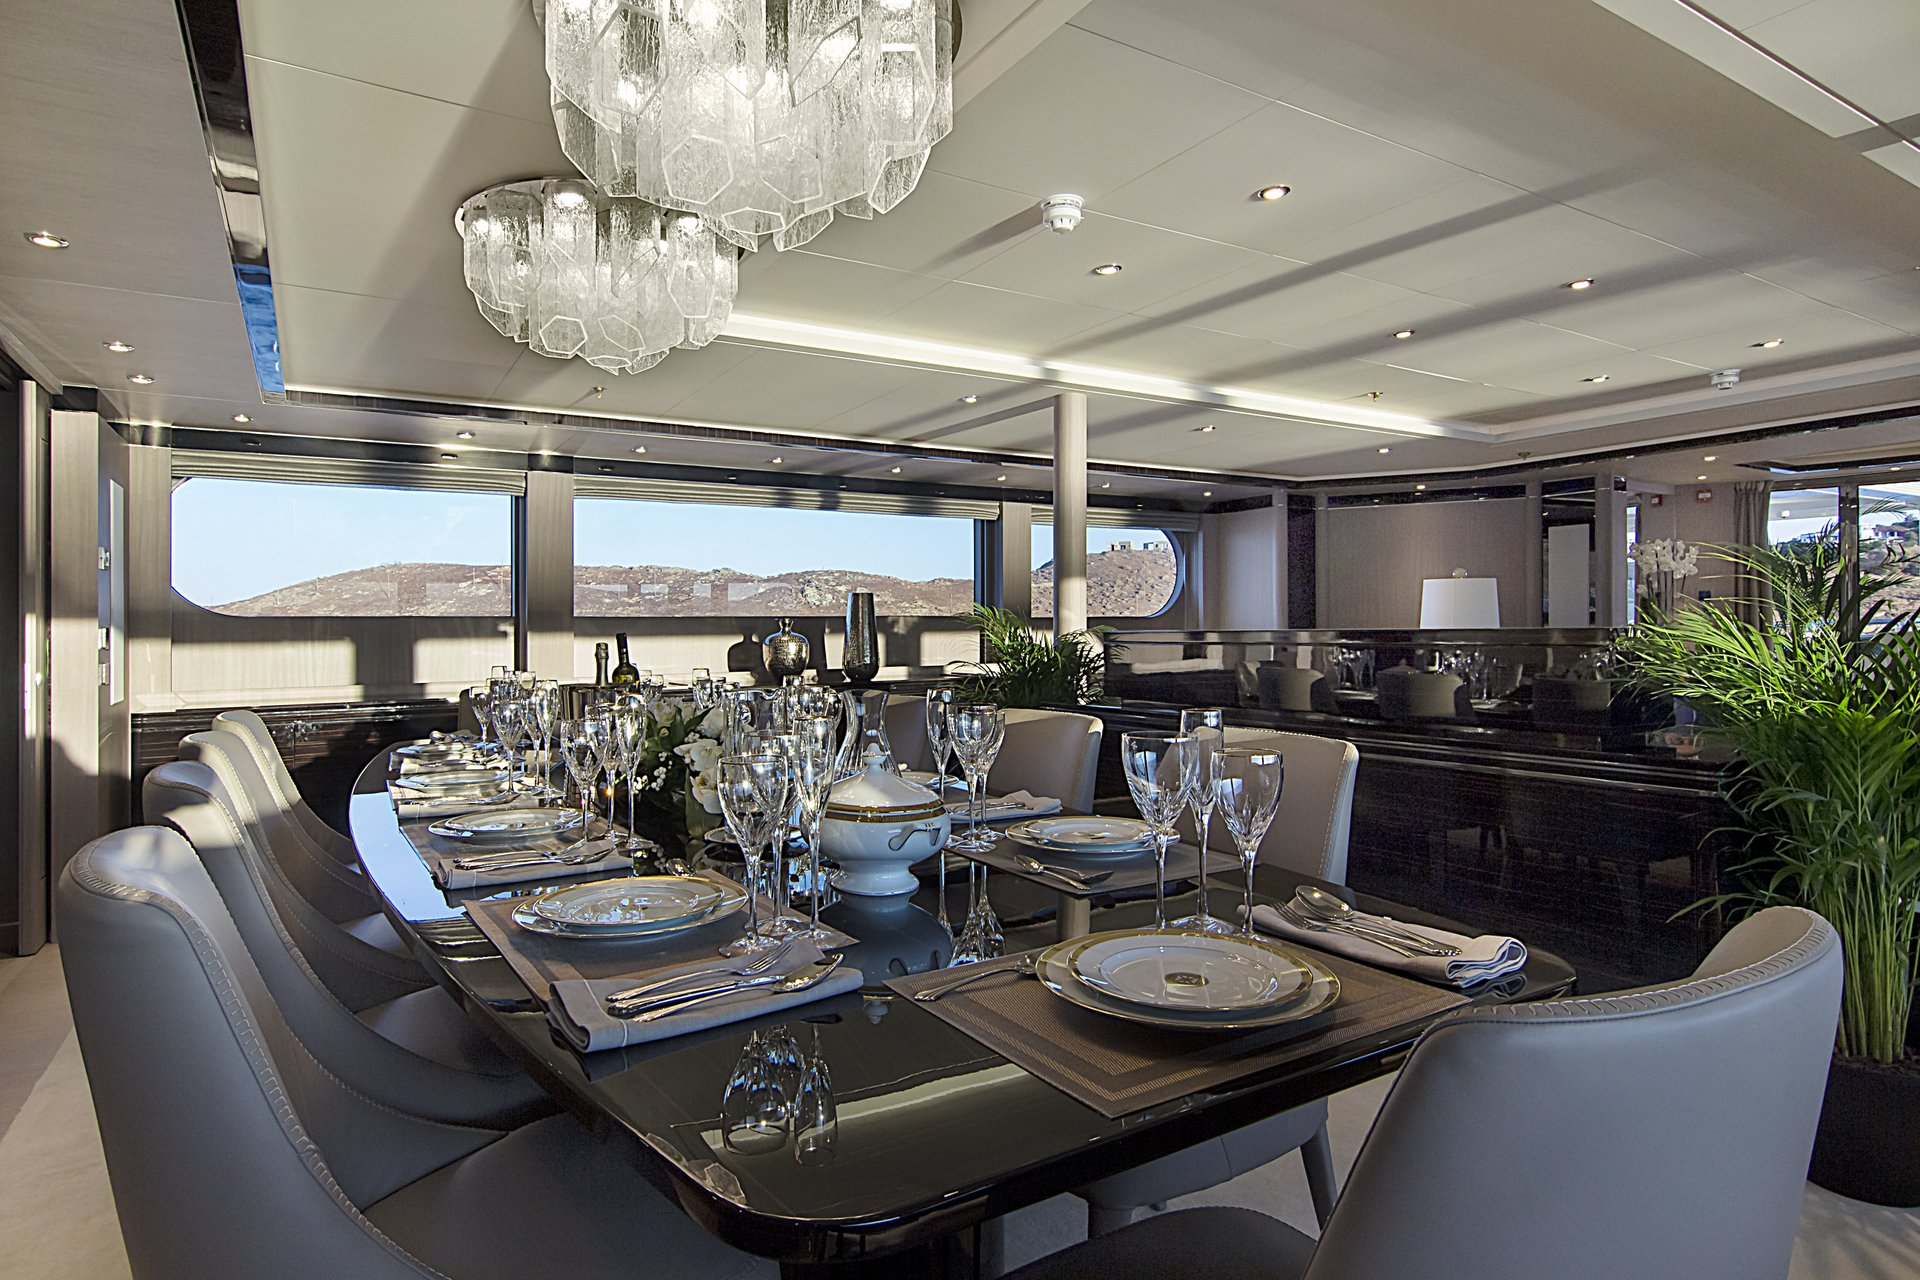 m/y invader yacht for charter indoor dining area